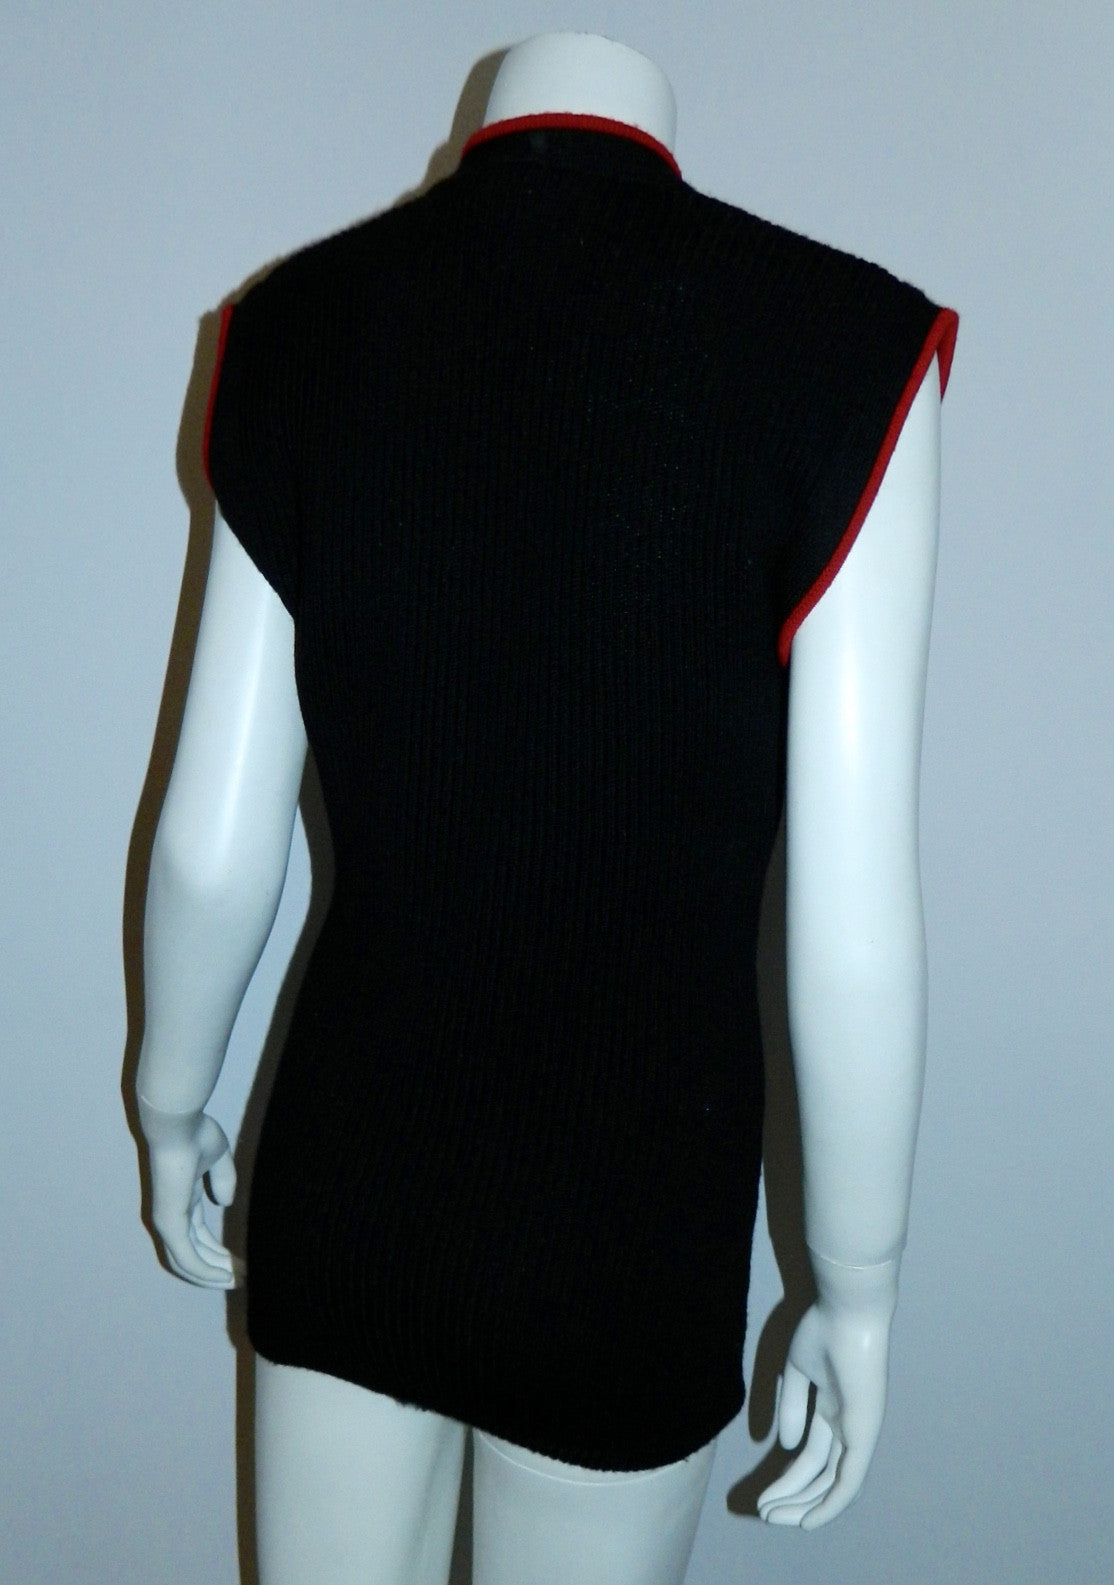 vintage KENZO sweater black wool ribbed knit top red trim 1980s designer